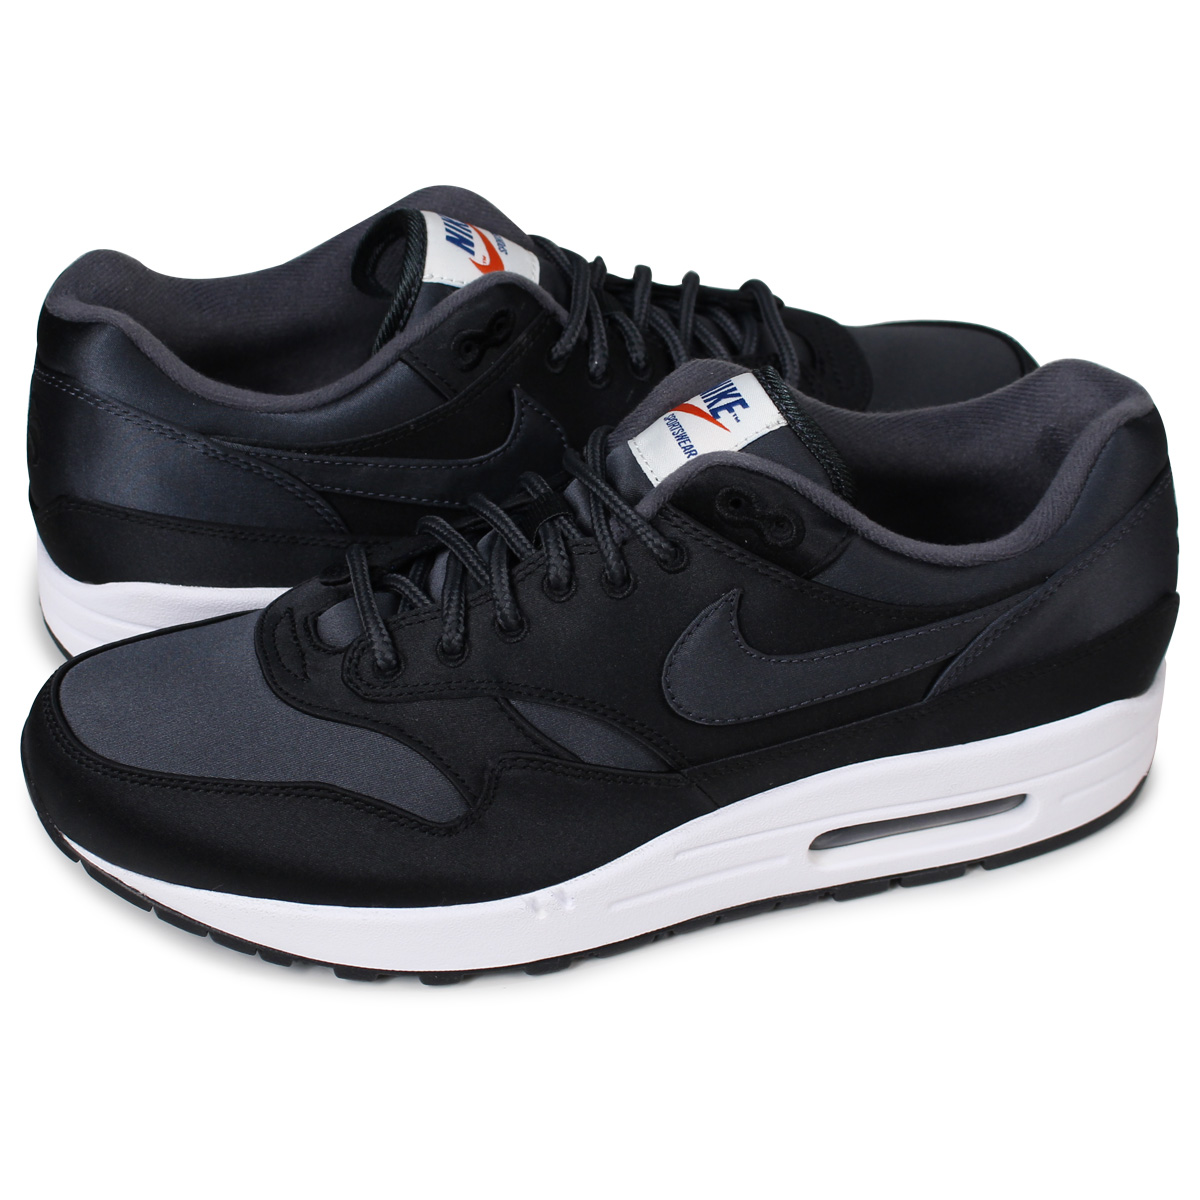 purchase cheap 71d2c 89e9d NIKE AIR MAX 1 SE Kie Ney AMAX 1 sneakers men AO1021-001 black  load  planned Shinnyu load in reservation product 5 19 containing